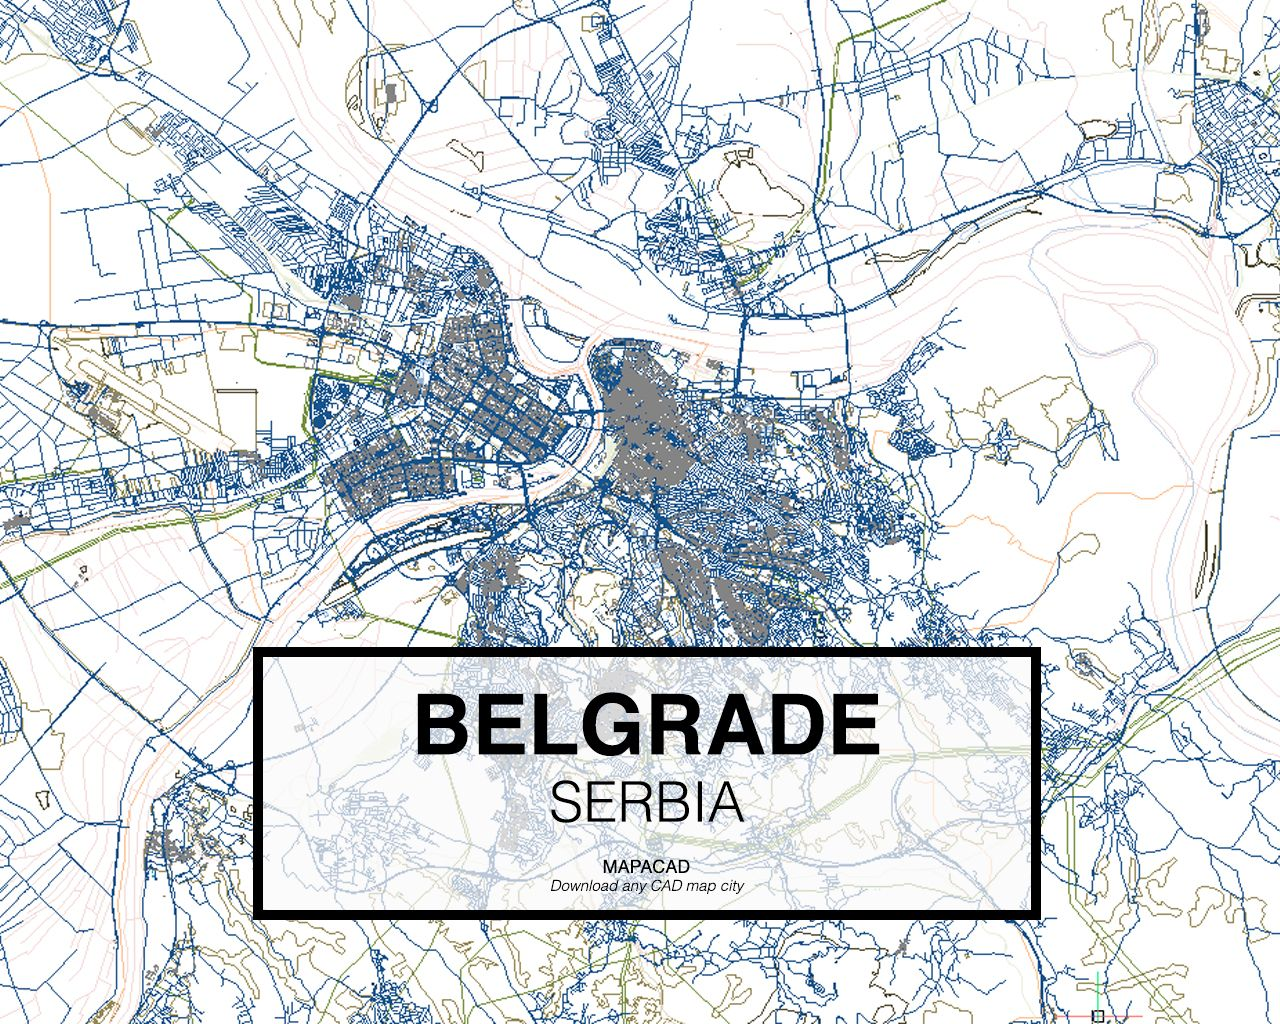 Belgrado serbia download cad map city in dwg ready to use in download cad map city in dwg ready to use in autocad gumiabroncs Choice Image